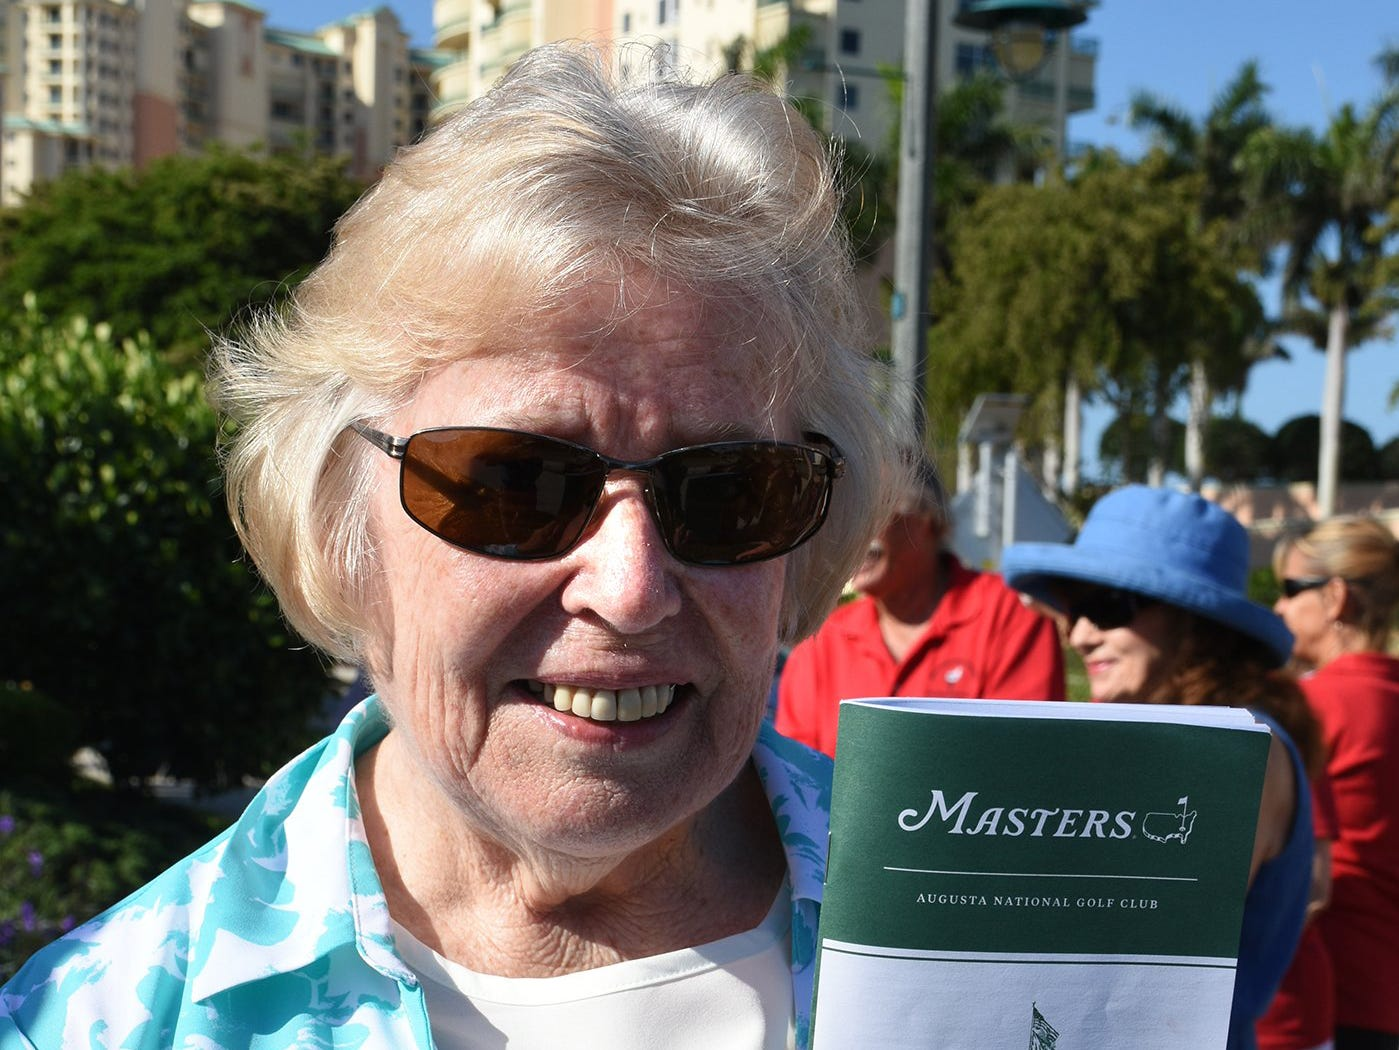 Mary Ann Sarazen, golf legend Gene Sarazewn's daughter, with a booklet from the Masters golf tournament. Friday morning, the Marco Island Foundation for the Arts unveiled a plaque with the names of donors who have contributed to the purchase of the Double Eagle sculpture at Sarazen Park on Marco.